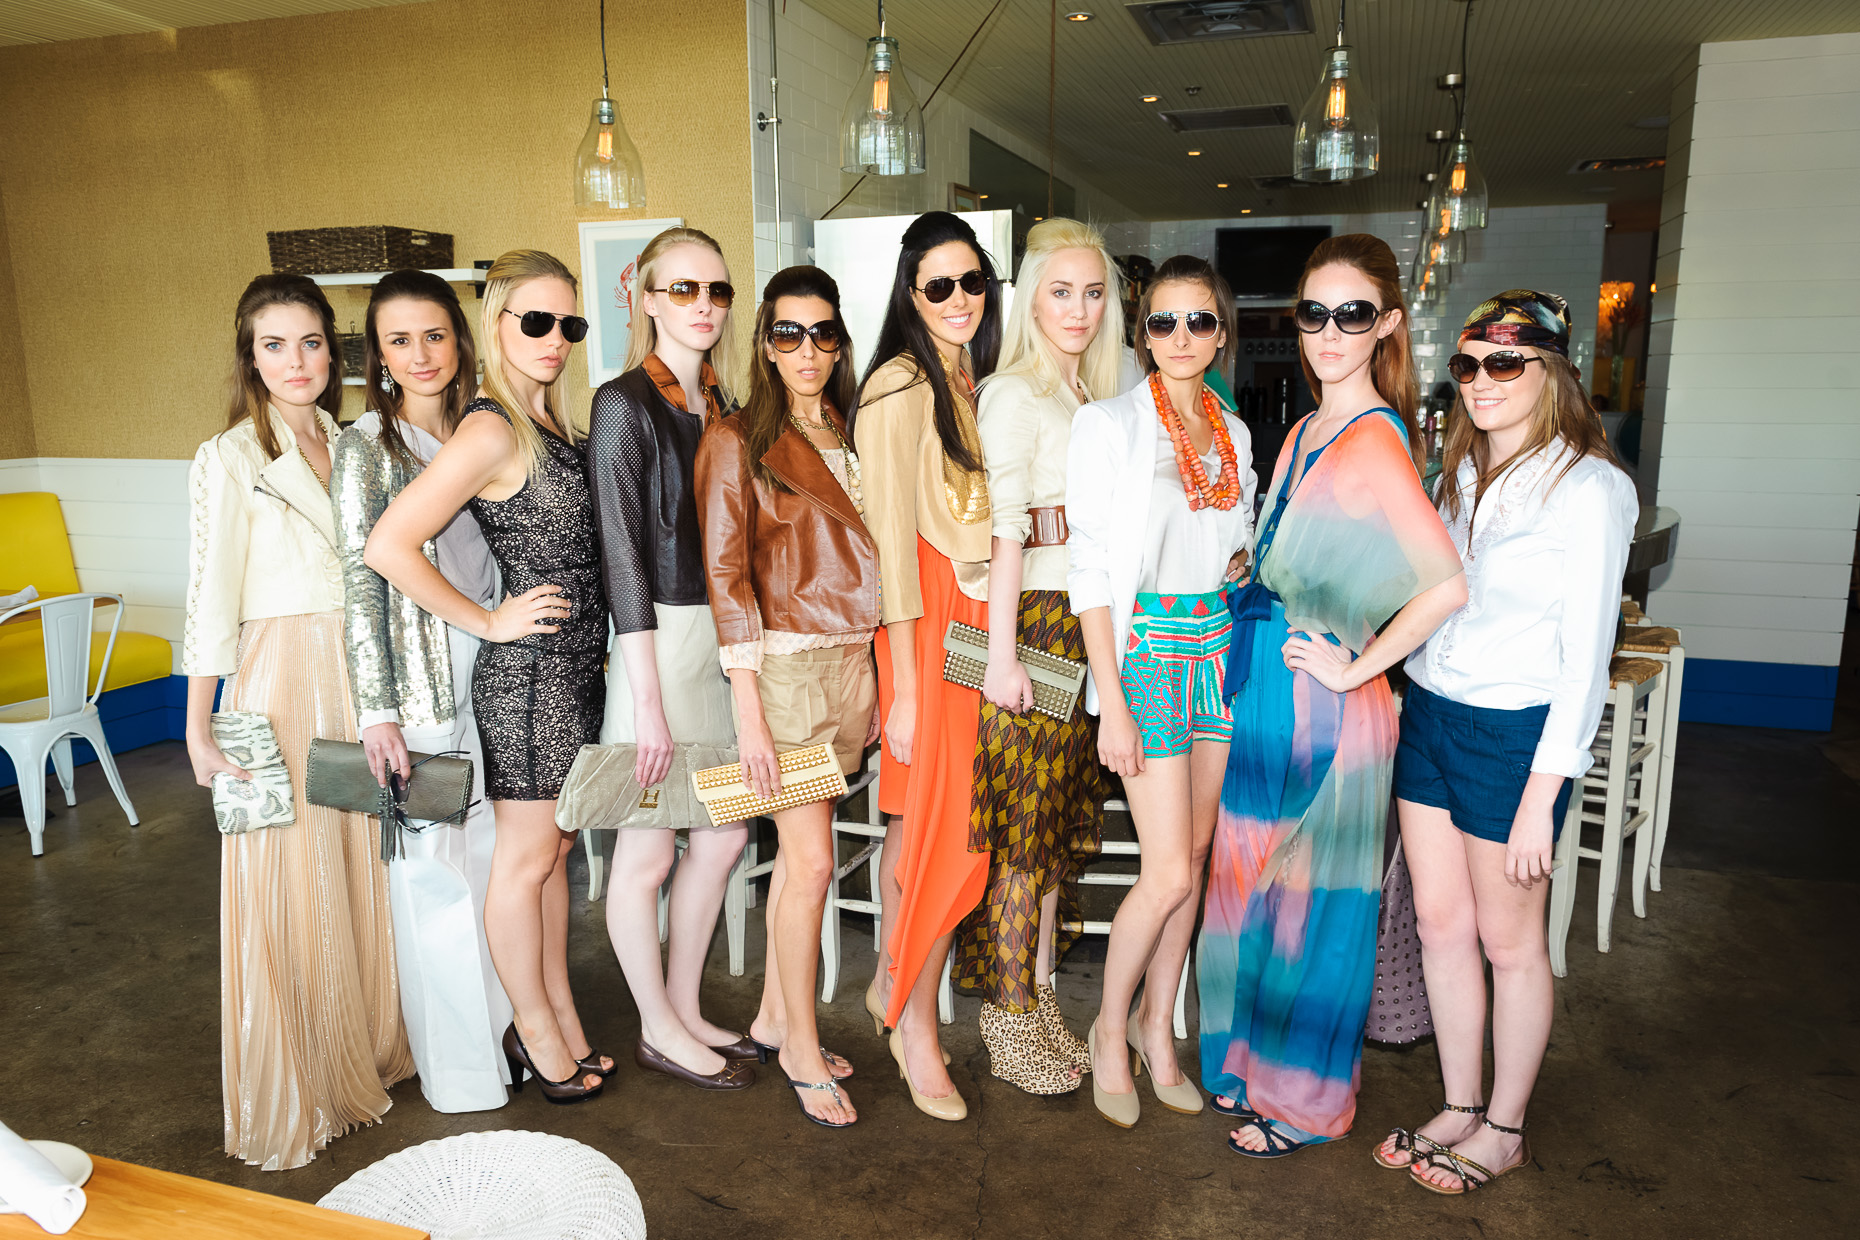 Tribeza-Spring-Fling-Perla-Austin-Event-Commercial-Photographer-Fashion.jpg